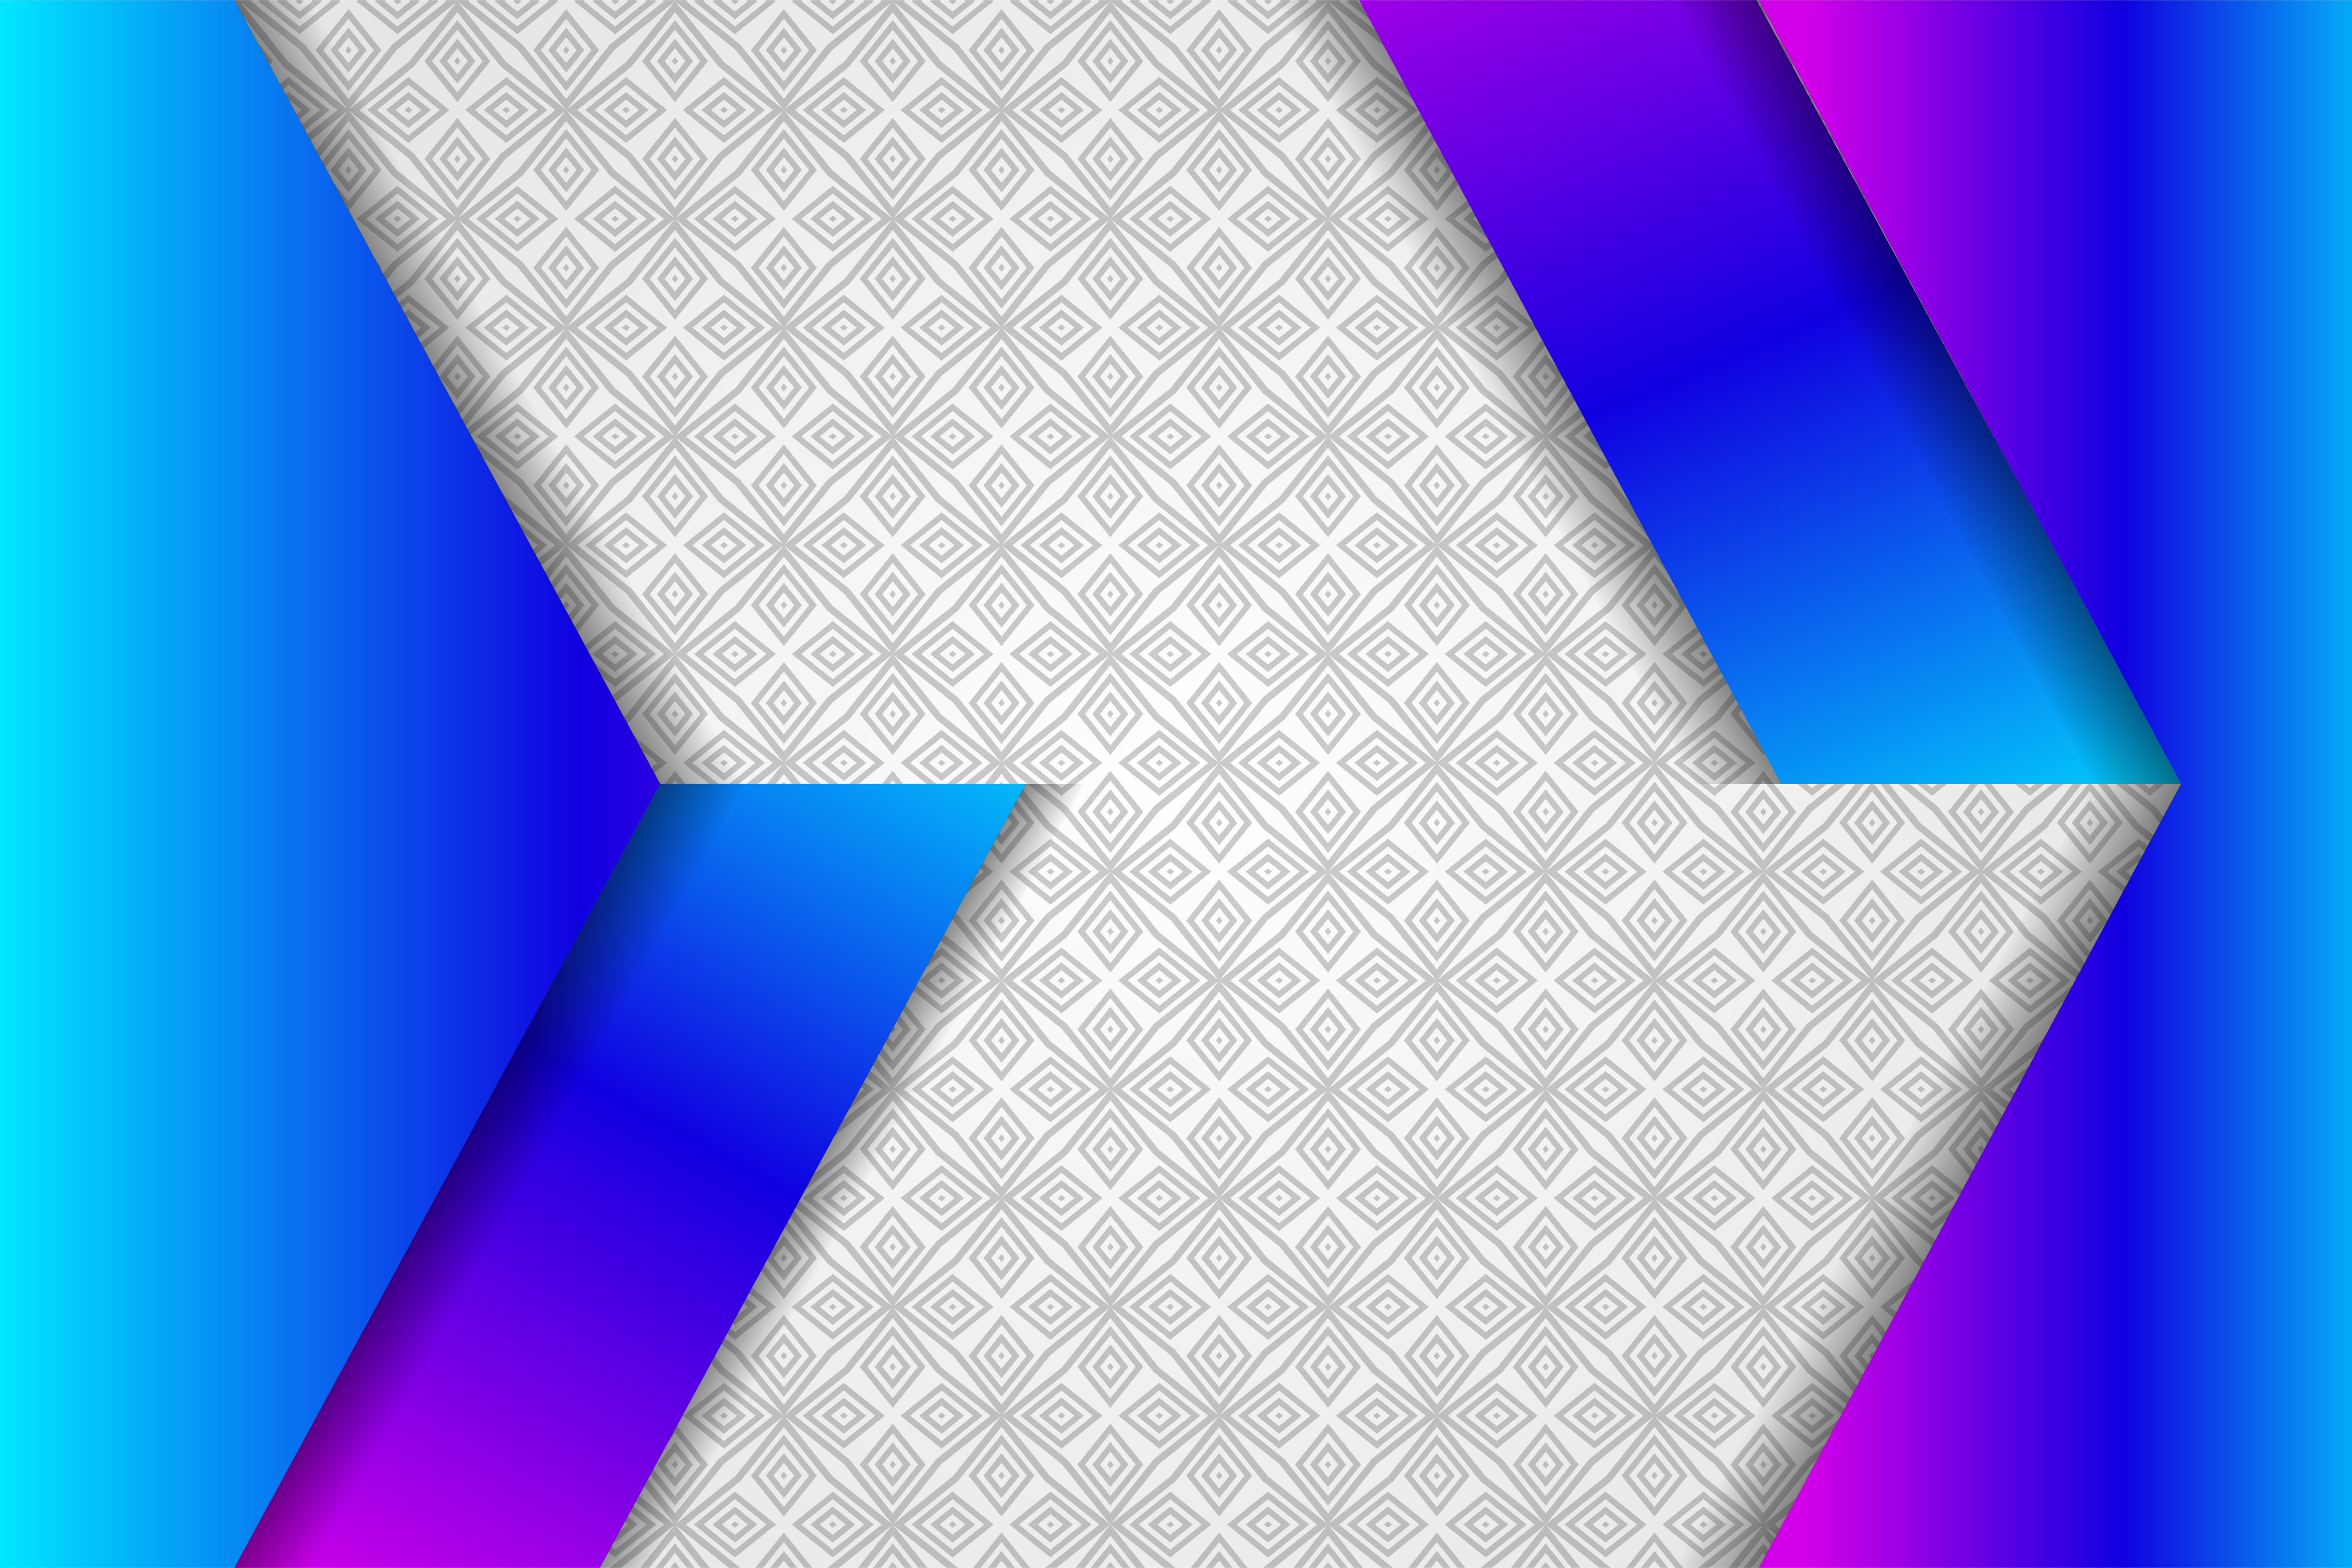 Download Free Abstract Geometric Background Blue Graphic By Noory Shopper for Cricut Explore, Silhouette and other cutting machines.